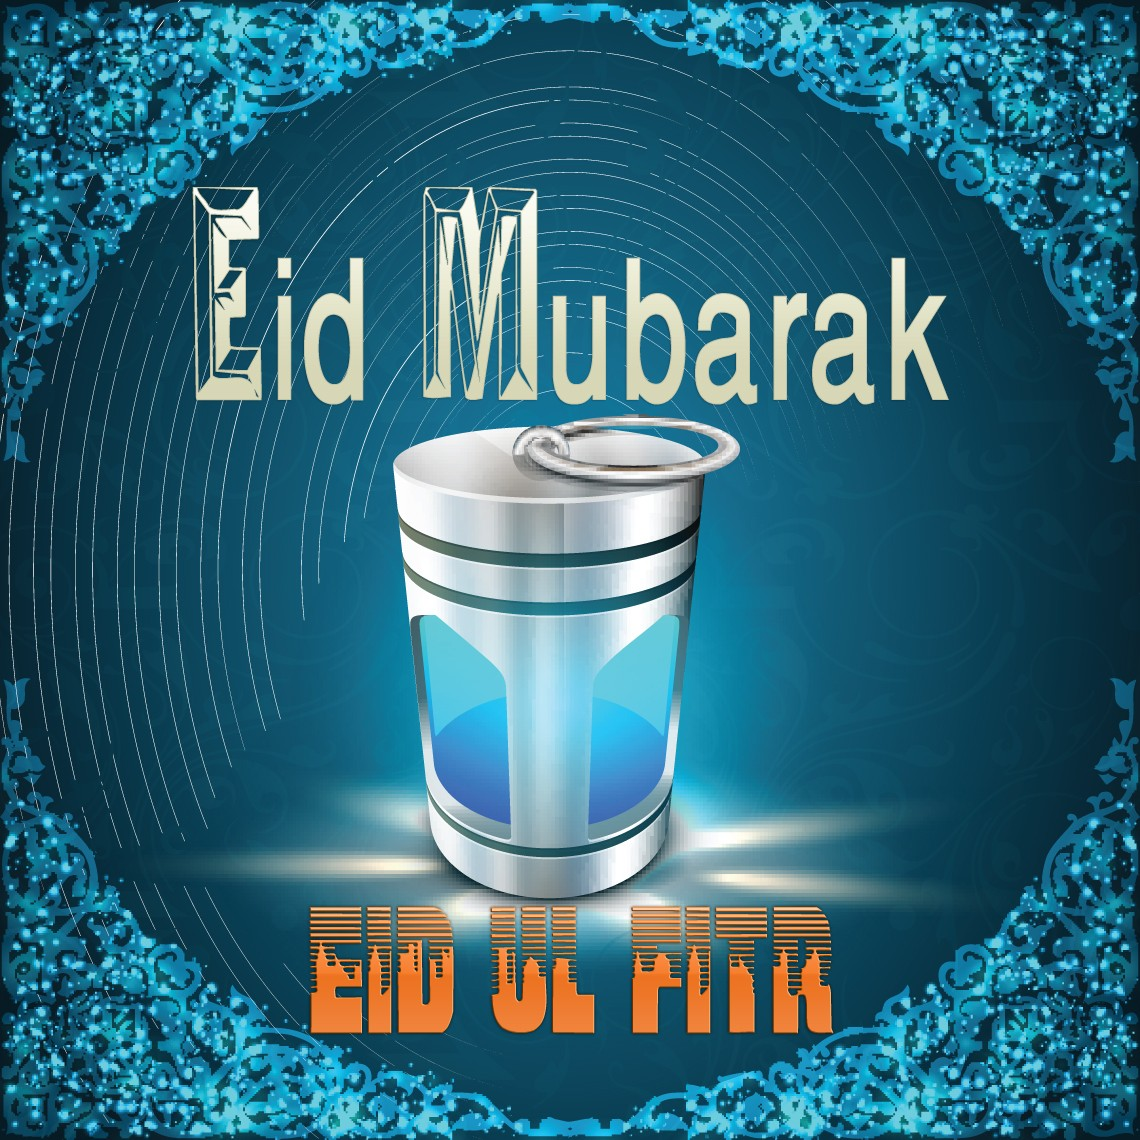 Best Wishes Eid al-Fitr Greetings Wishes Image